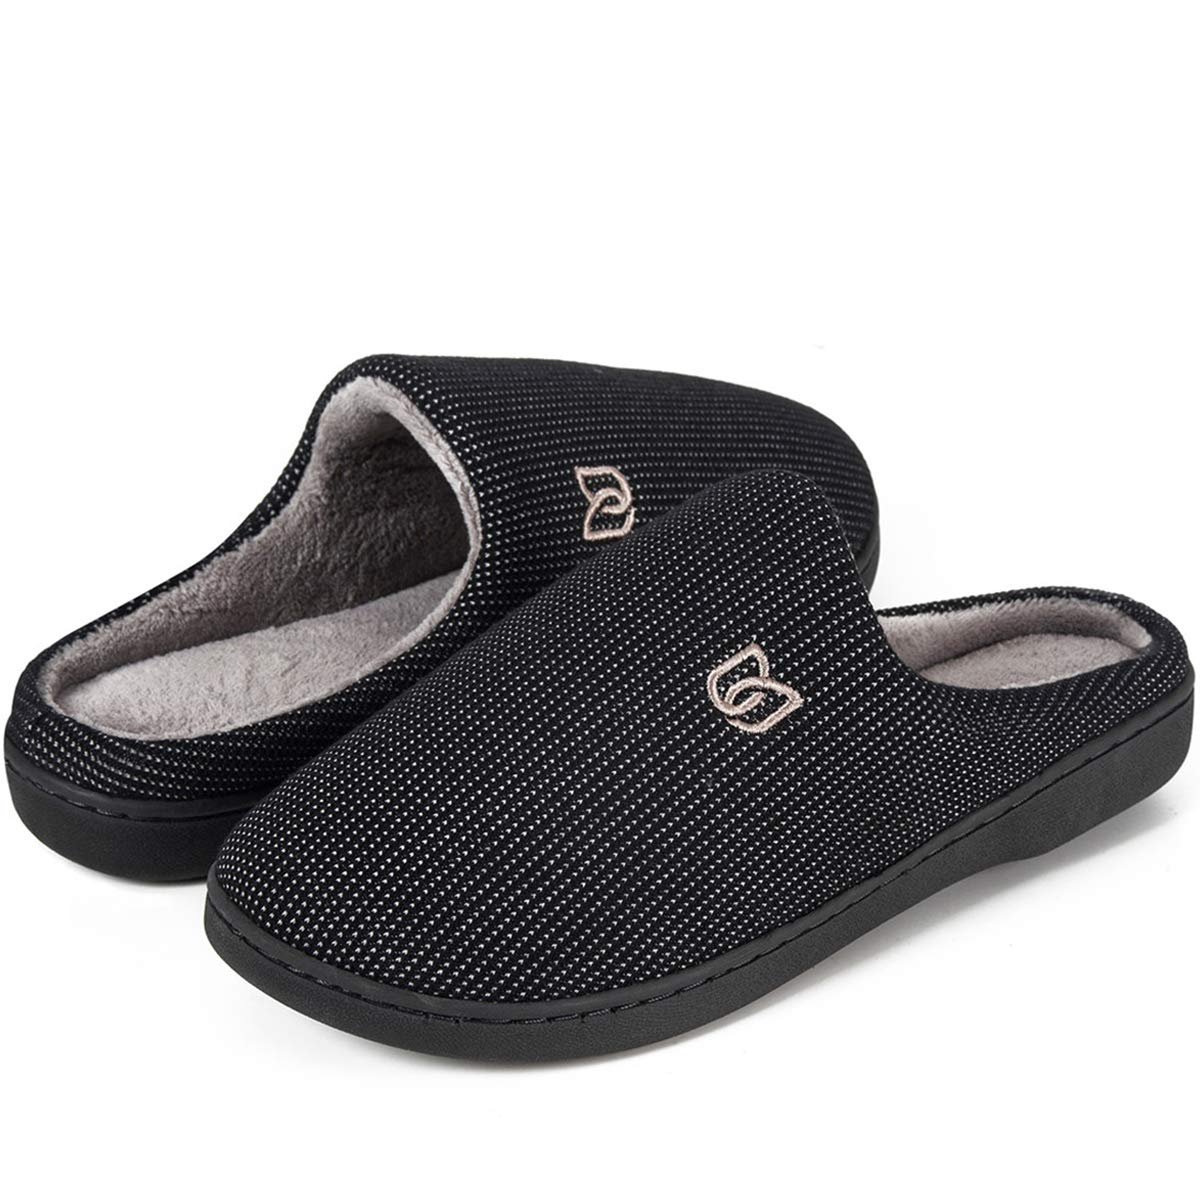 WateLves Men's Slippers Memory Foam Classic Two-Tone House Slippers